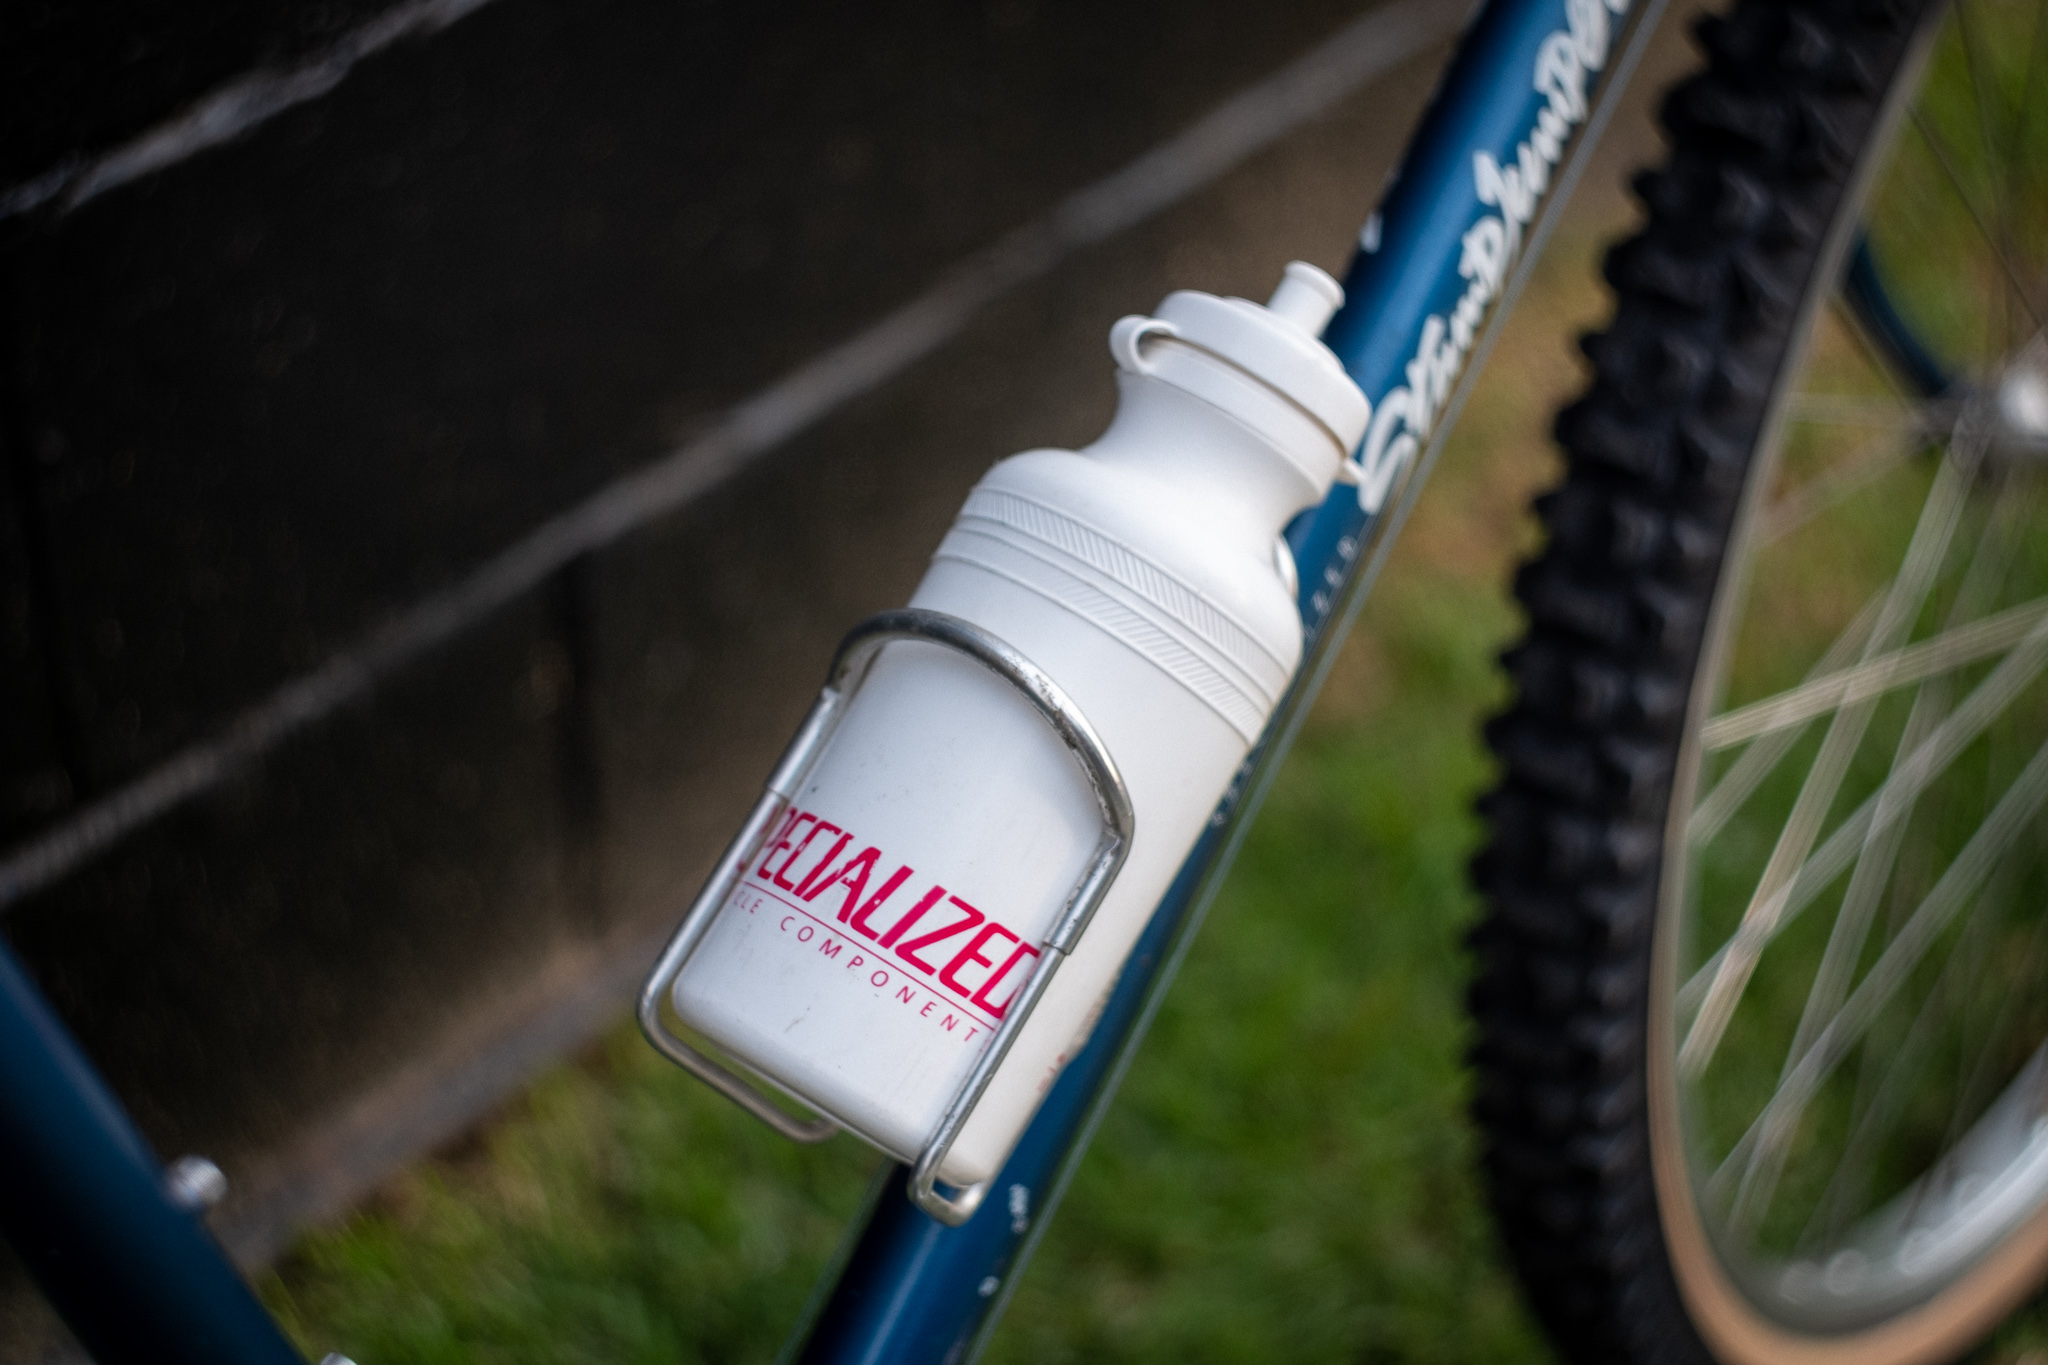 1981 Specialized Stumpjumper bottle detail